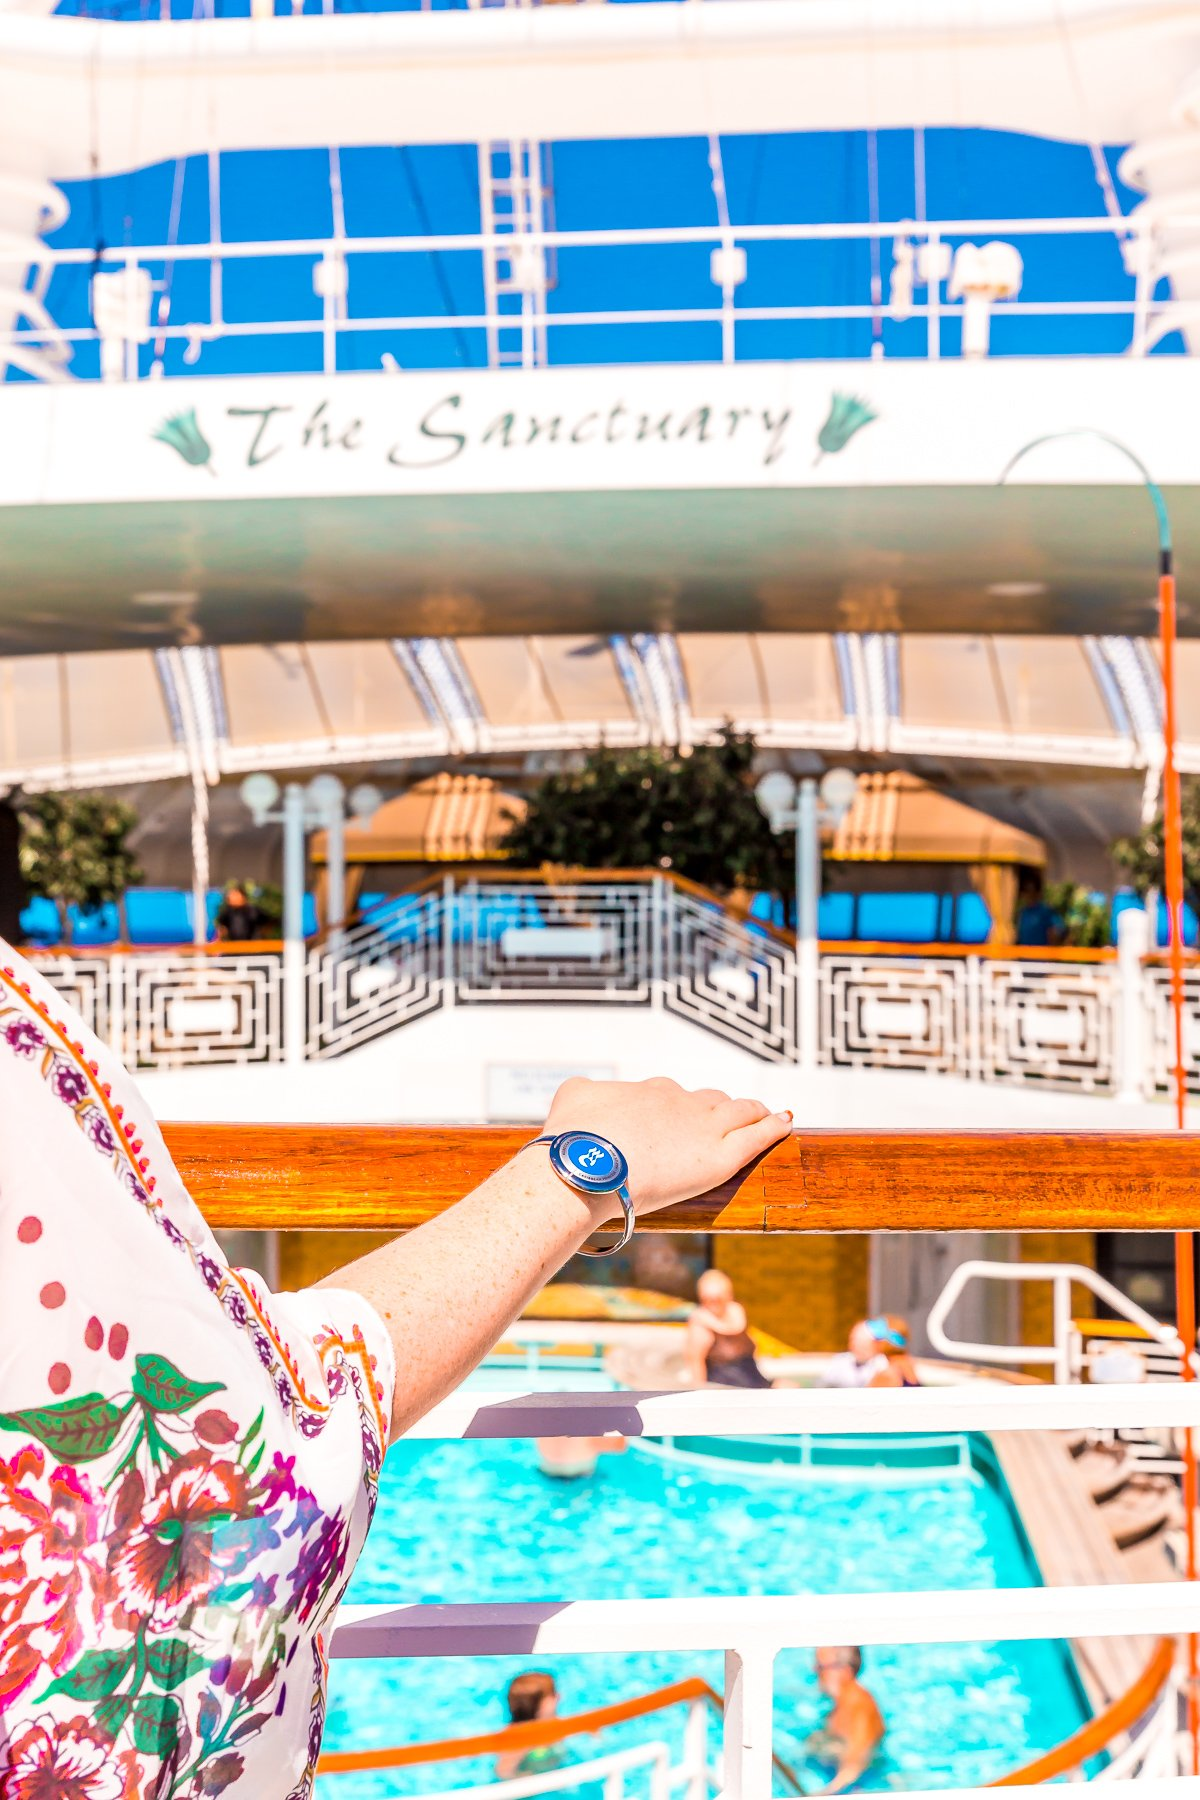 Woman's hand resting on a railing on a cruise ship.